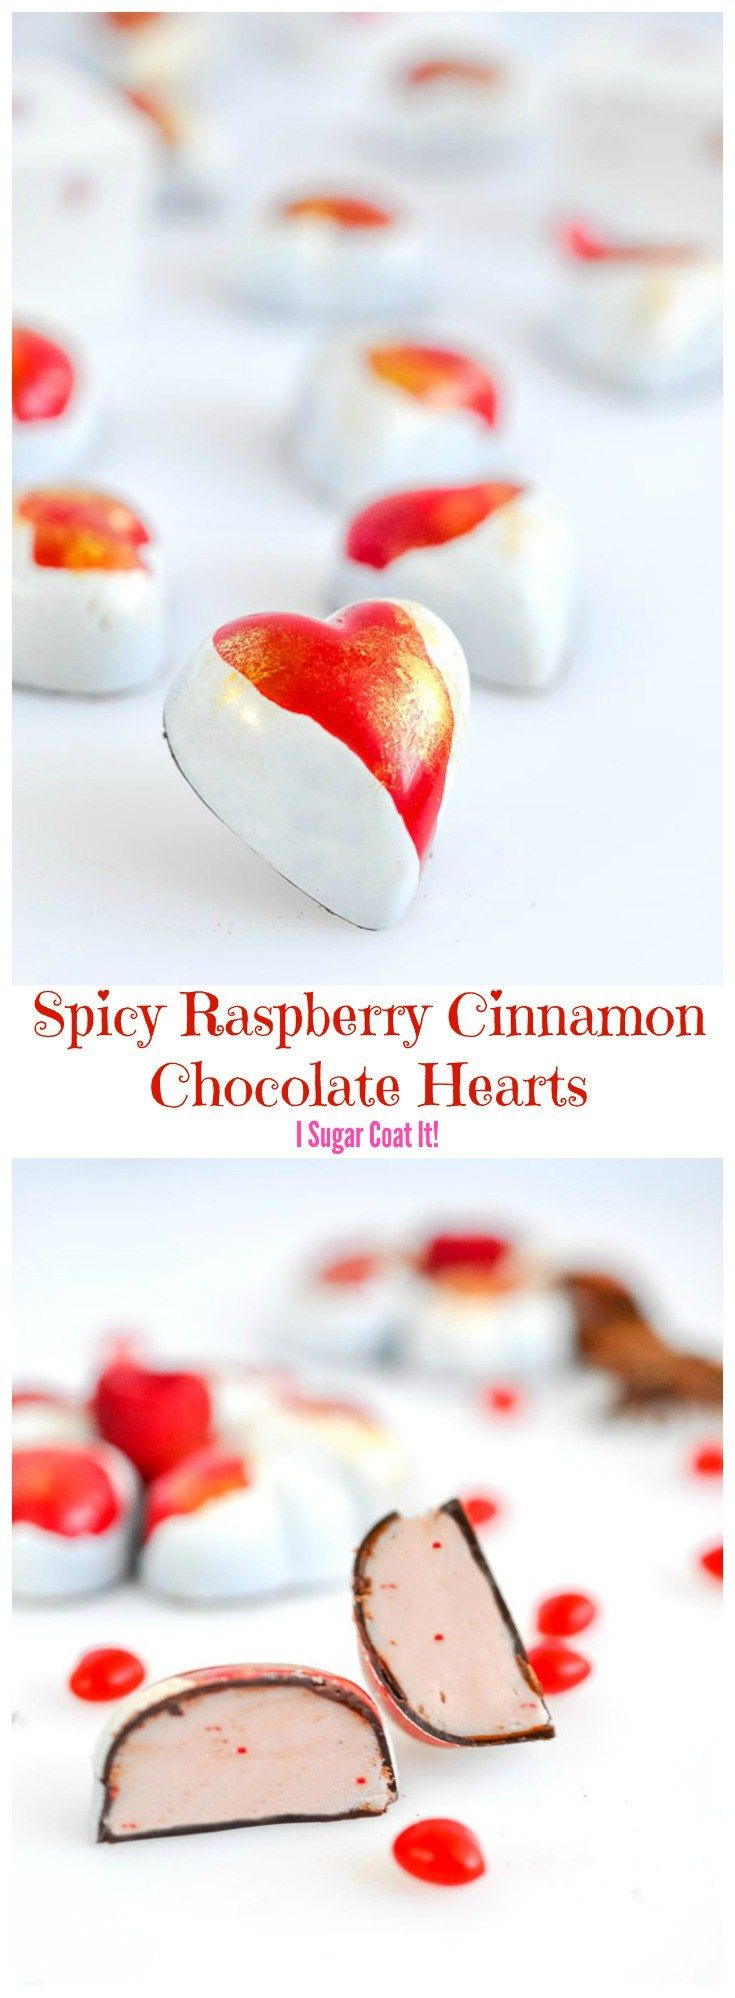 Reminiscent of cinnamon heart candy, these Spicy Raspberry Cinnamon #Chocolate Hearts are a perfect way to add a little sweet heat to your #Valentine's Day!